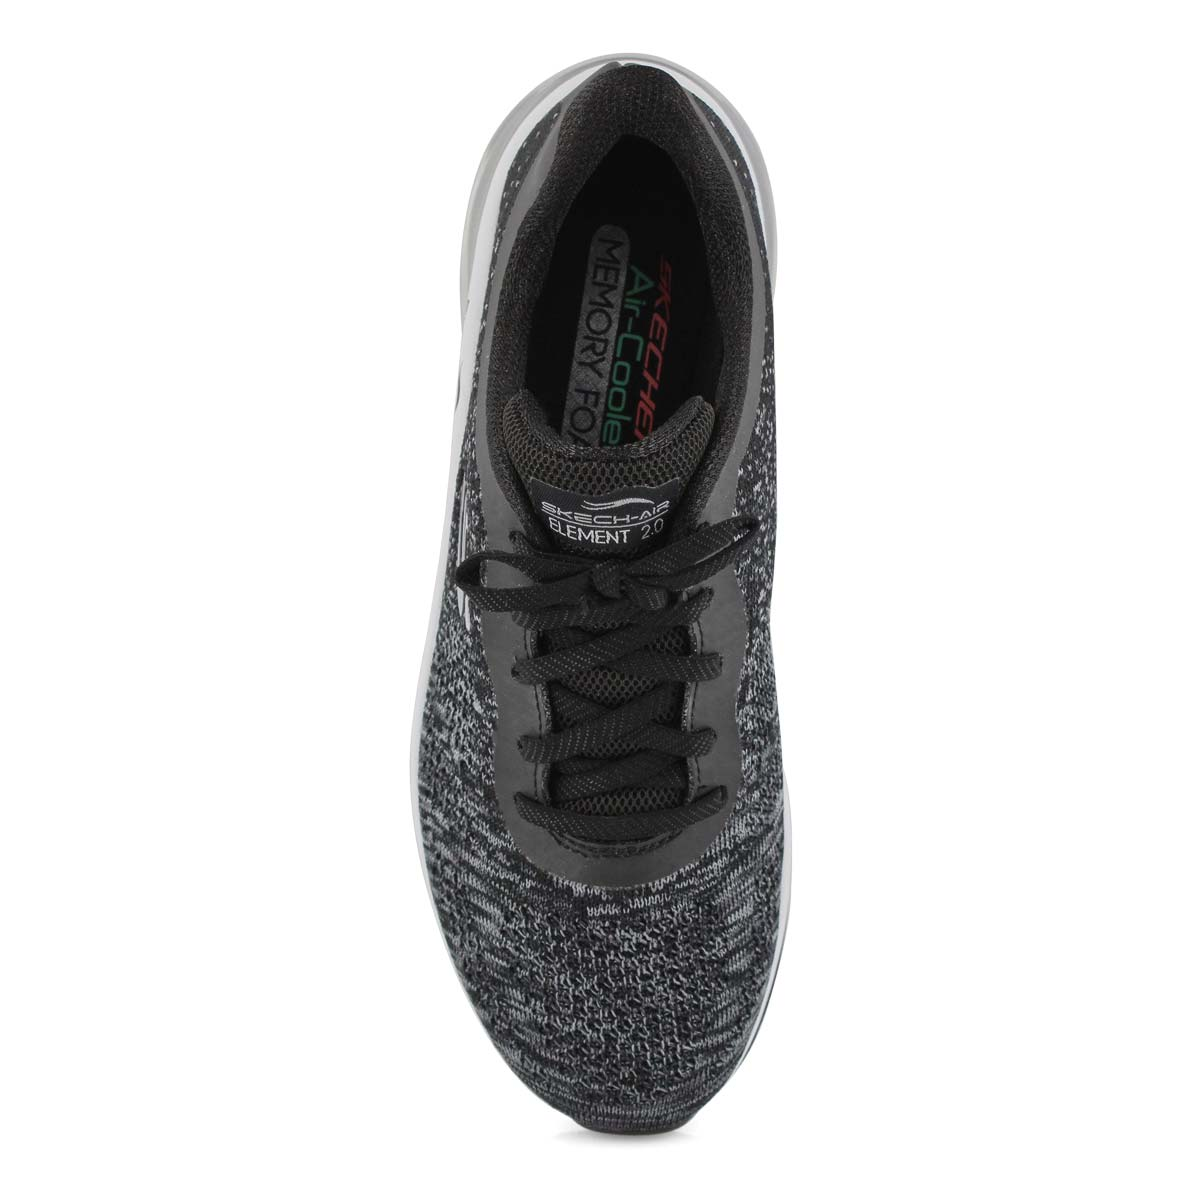 Lds Skech-Air Element 2.0 black sneaker